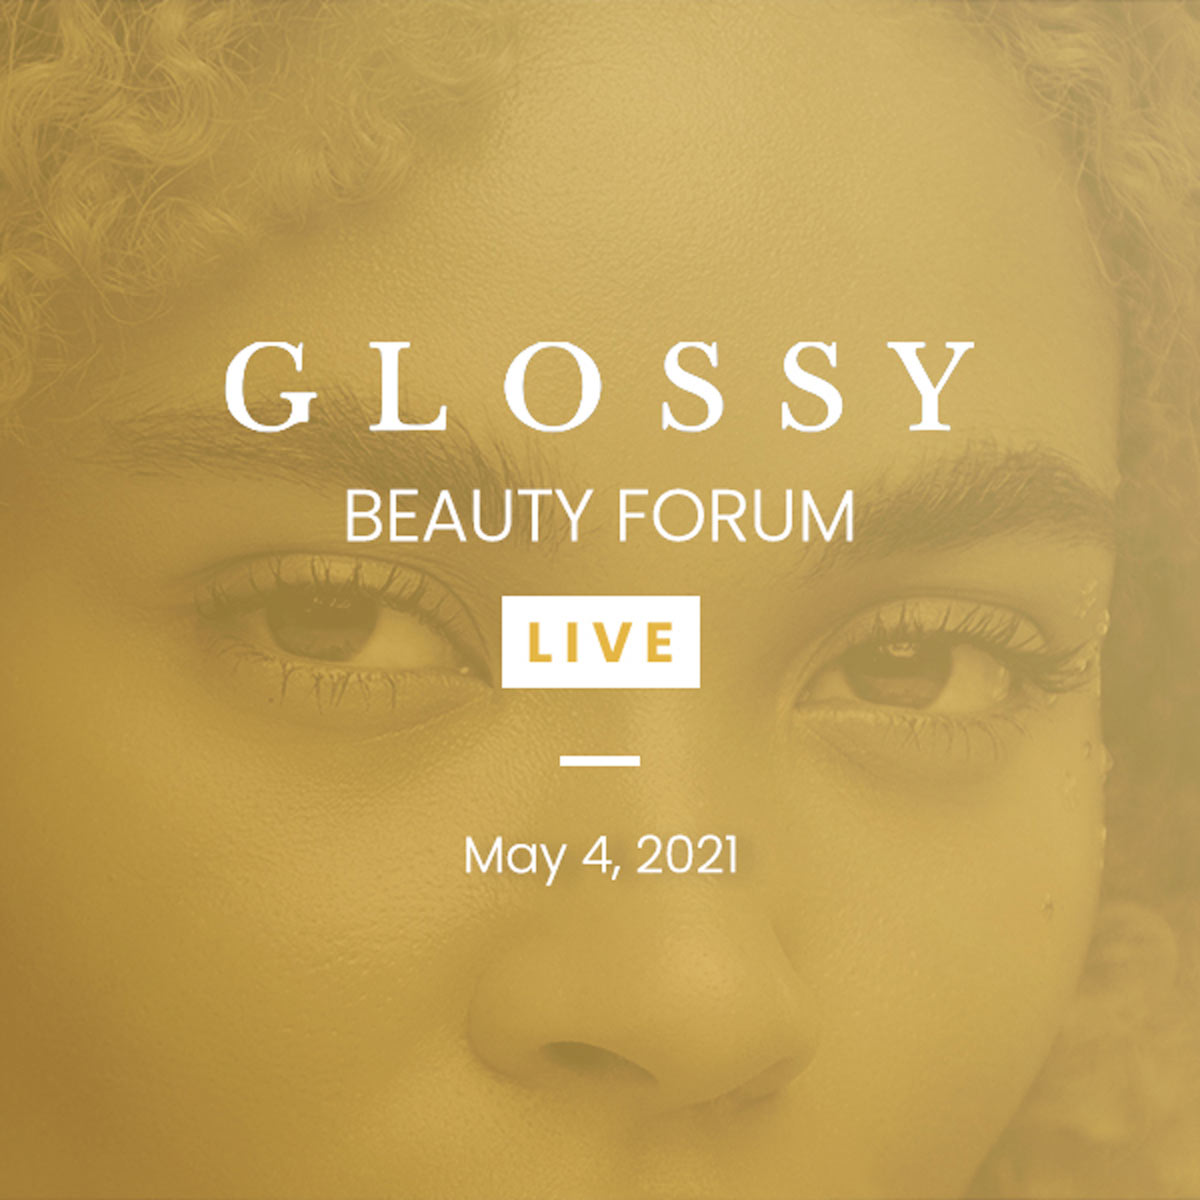 Bambuser to share keys to Live Video Shopping success at the Glossy Beauty Forum LIVE